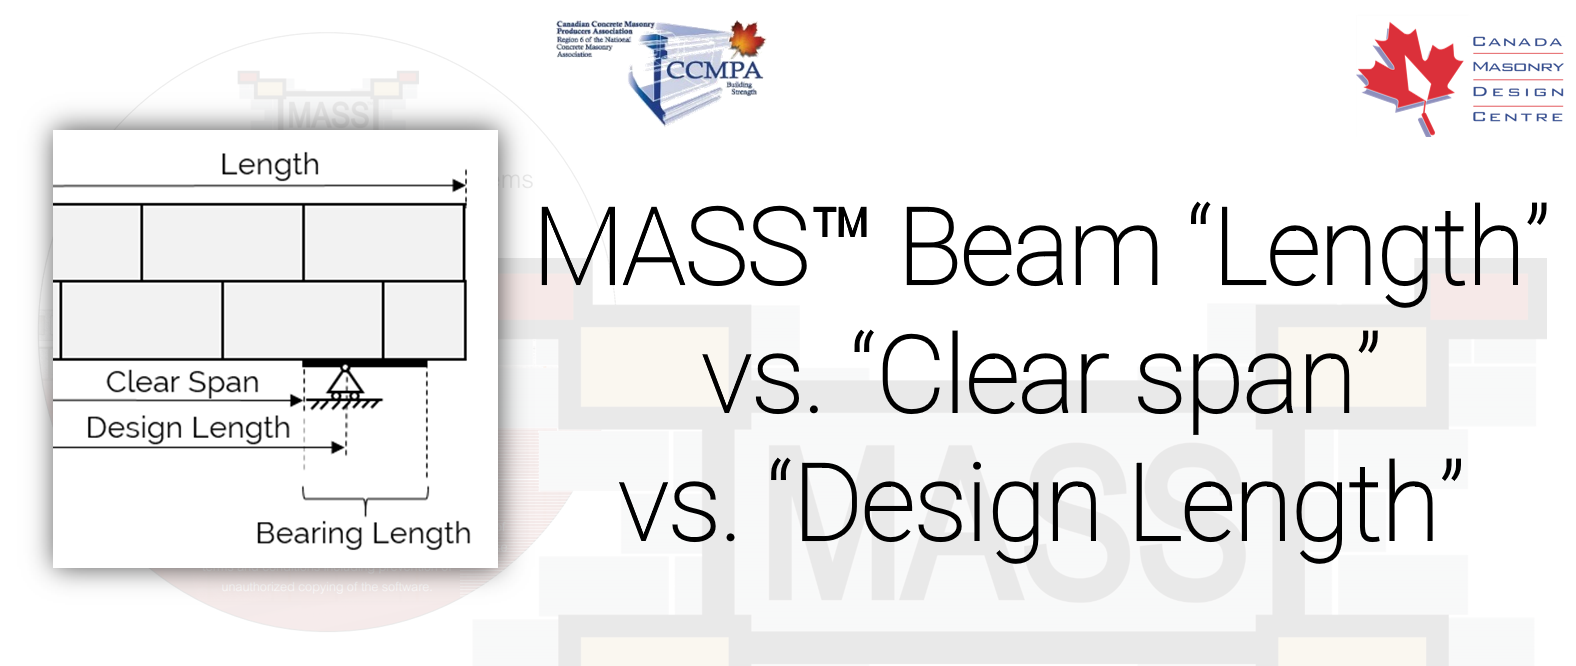 Canada Masonry Design Centre What Is The Difference Between The Length Clear Span Bearing Length And Design Length Of A Masonry Beam In Mass